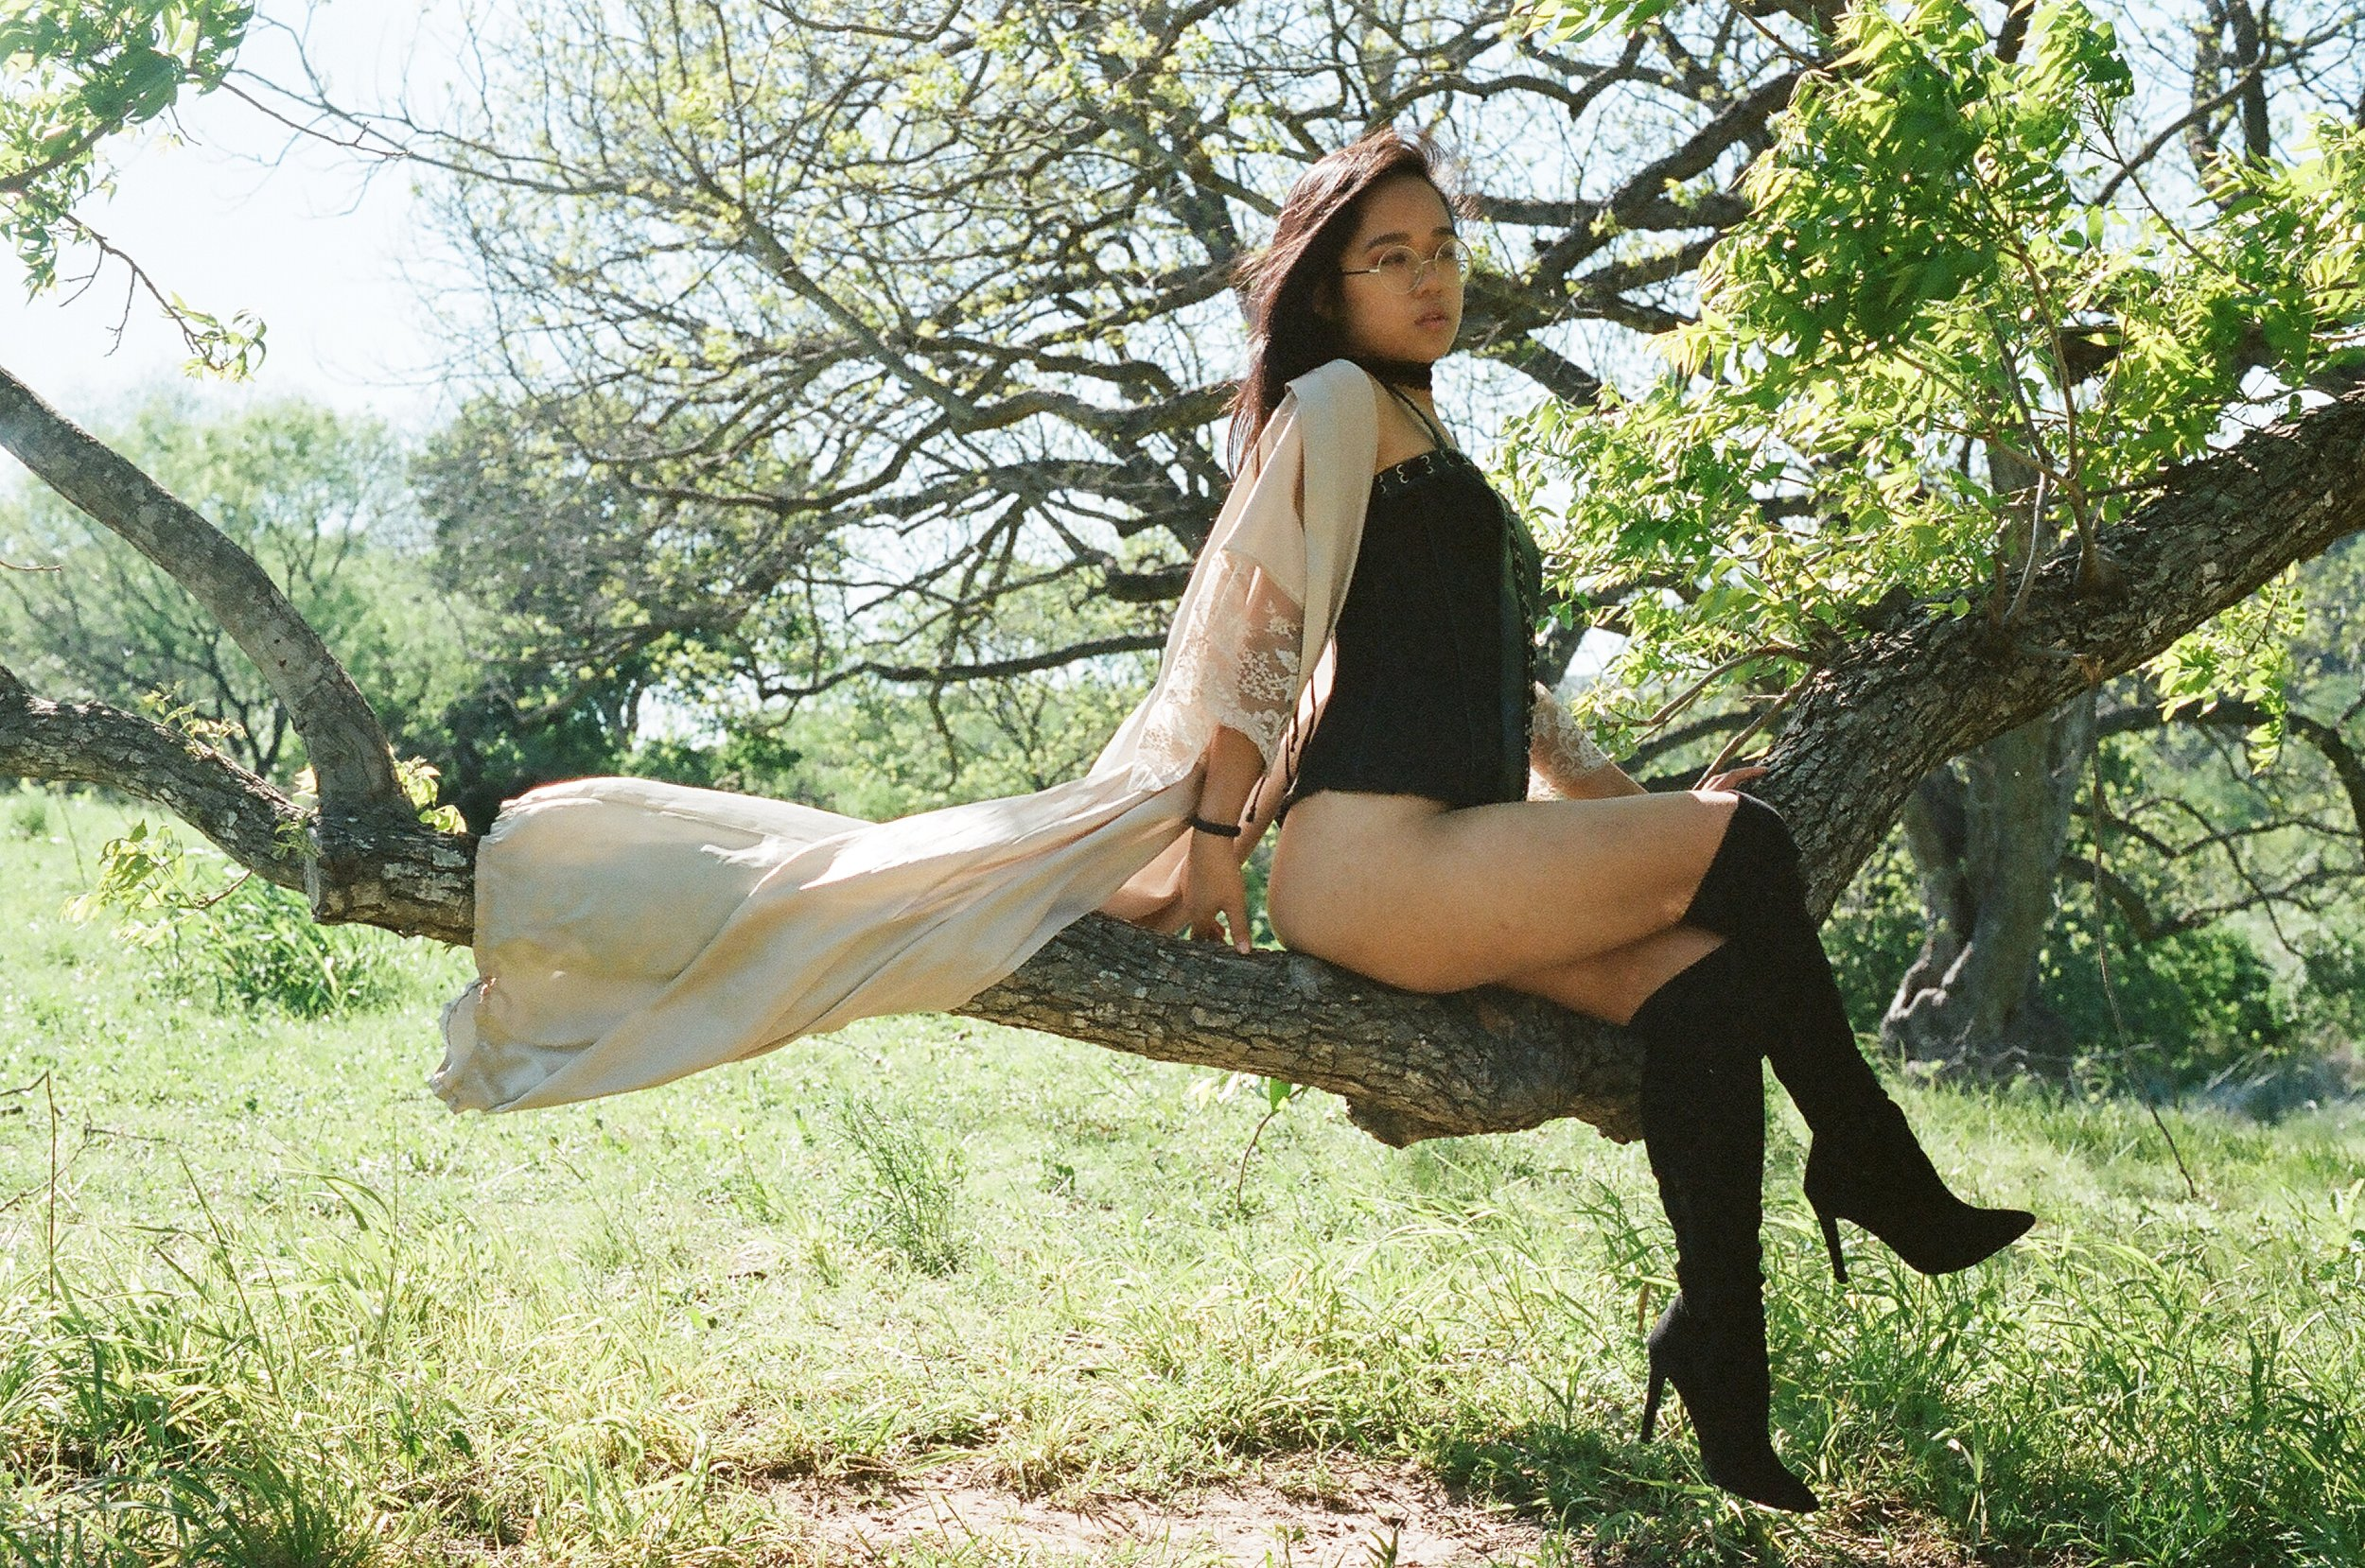 Asian femdom Empress Wu in a corset and thigh high boots sitting on a branch of a tree on a hot Texas day